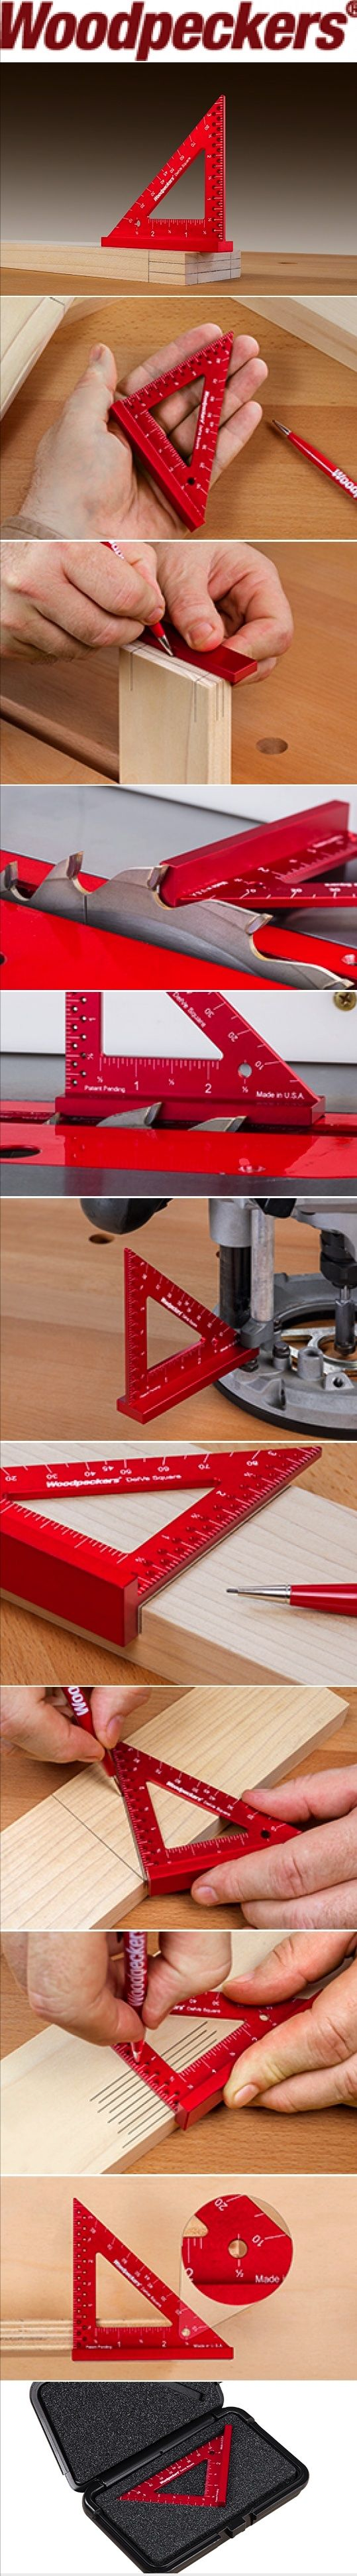 The Swiss Army Knife Of Woodworking Squares All This In A